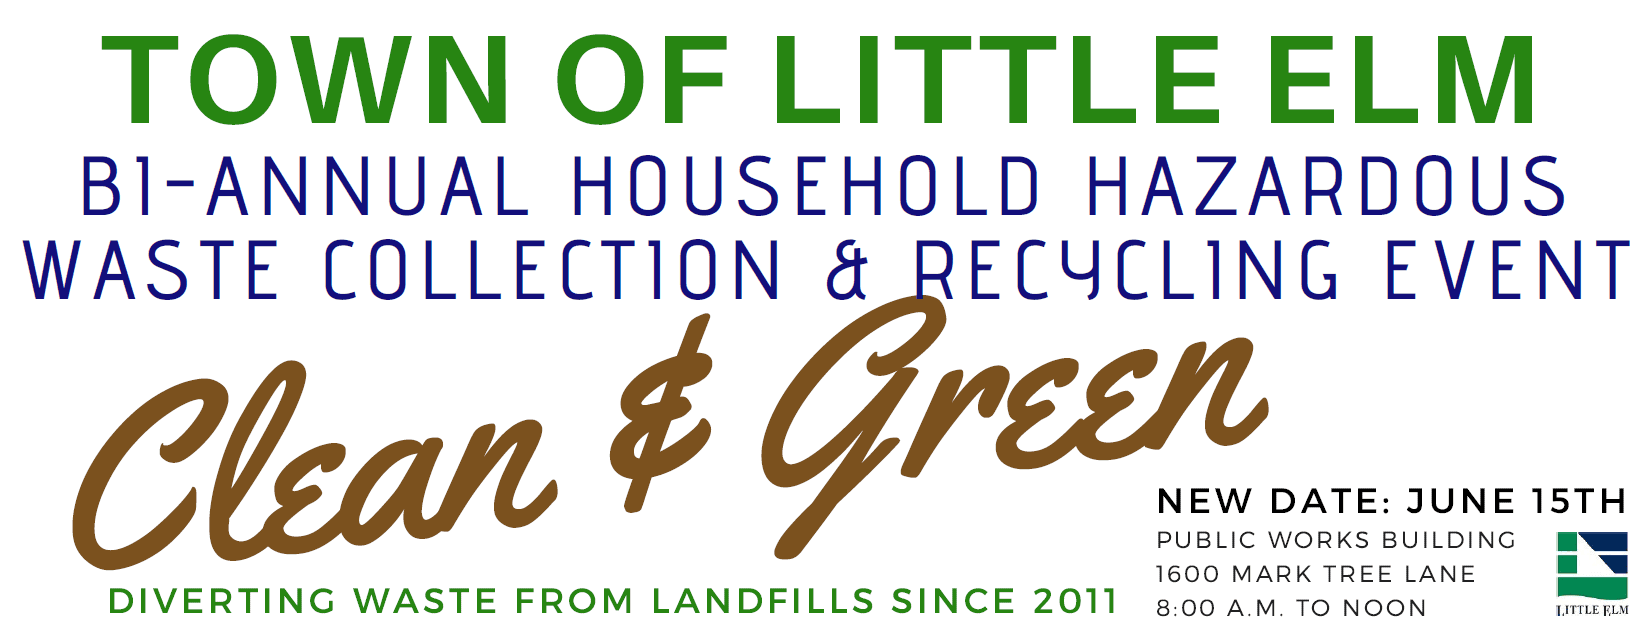 Specialty Recycling and HHW Disposal Opportunities | Town of Little